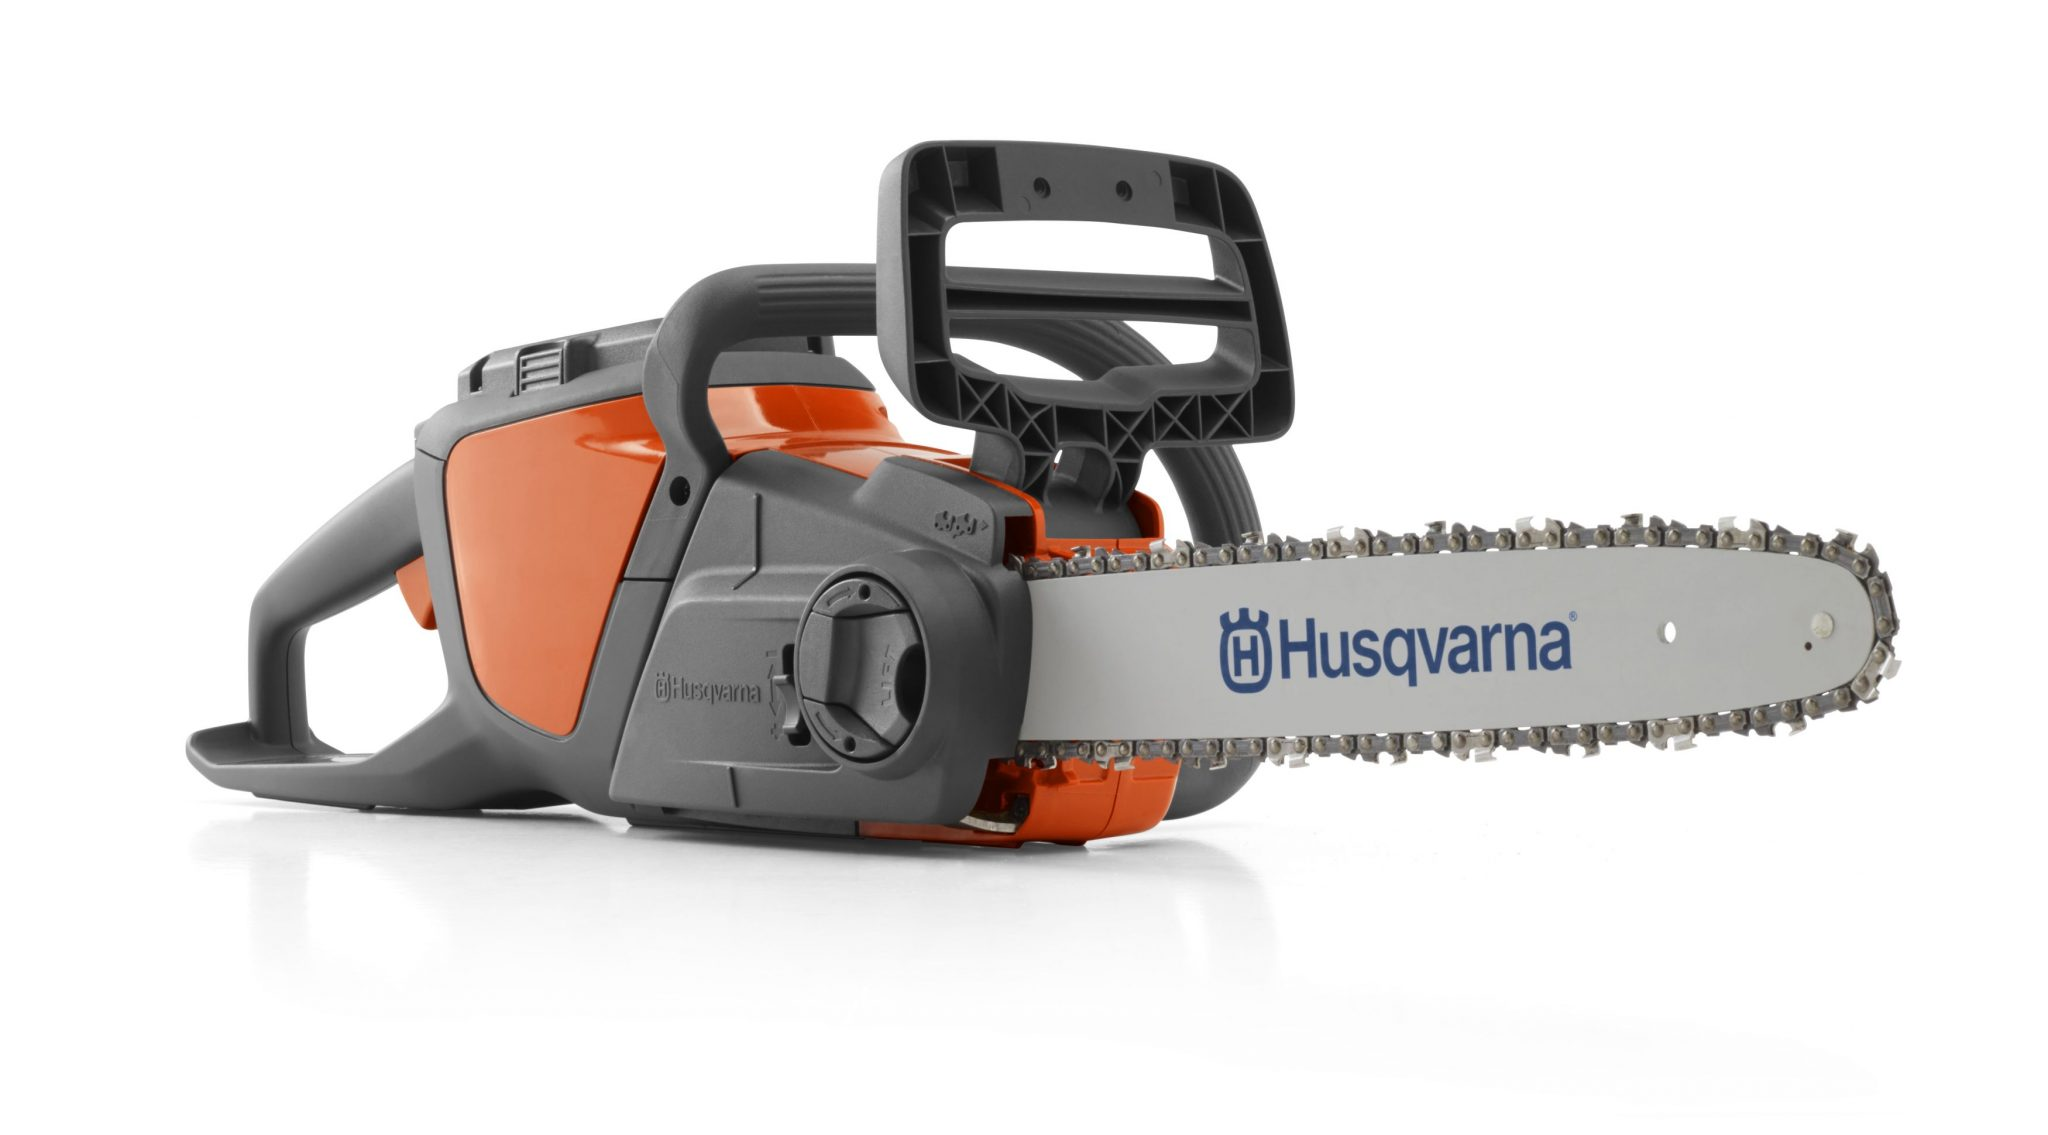 Husqvarna 120i 36v 12 cordless chainsaw radmore tucker for Gardening tools and accessories